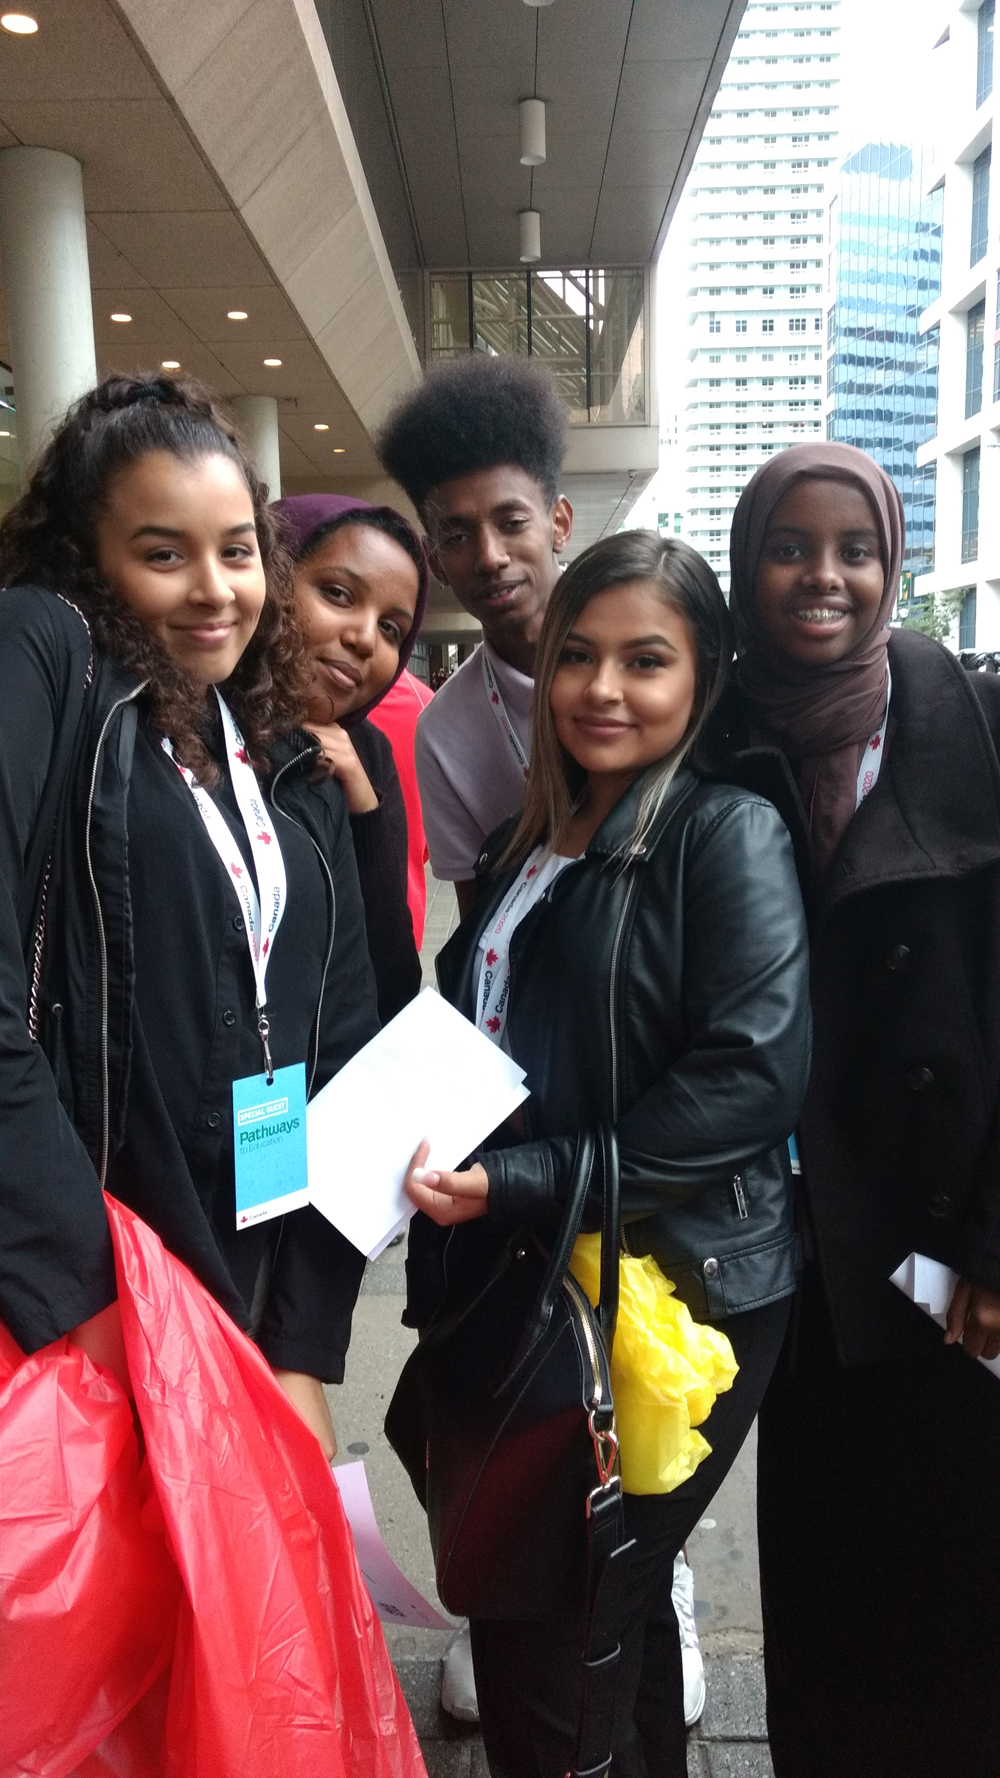 Kitchener Pathways Students attend Canada 2020 event with President Barack Obama